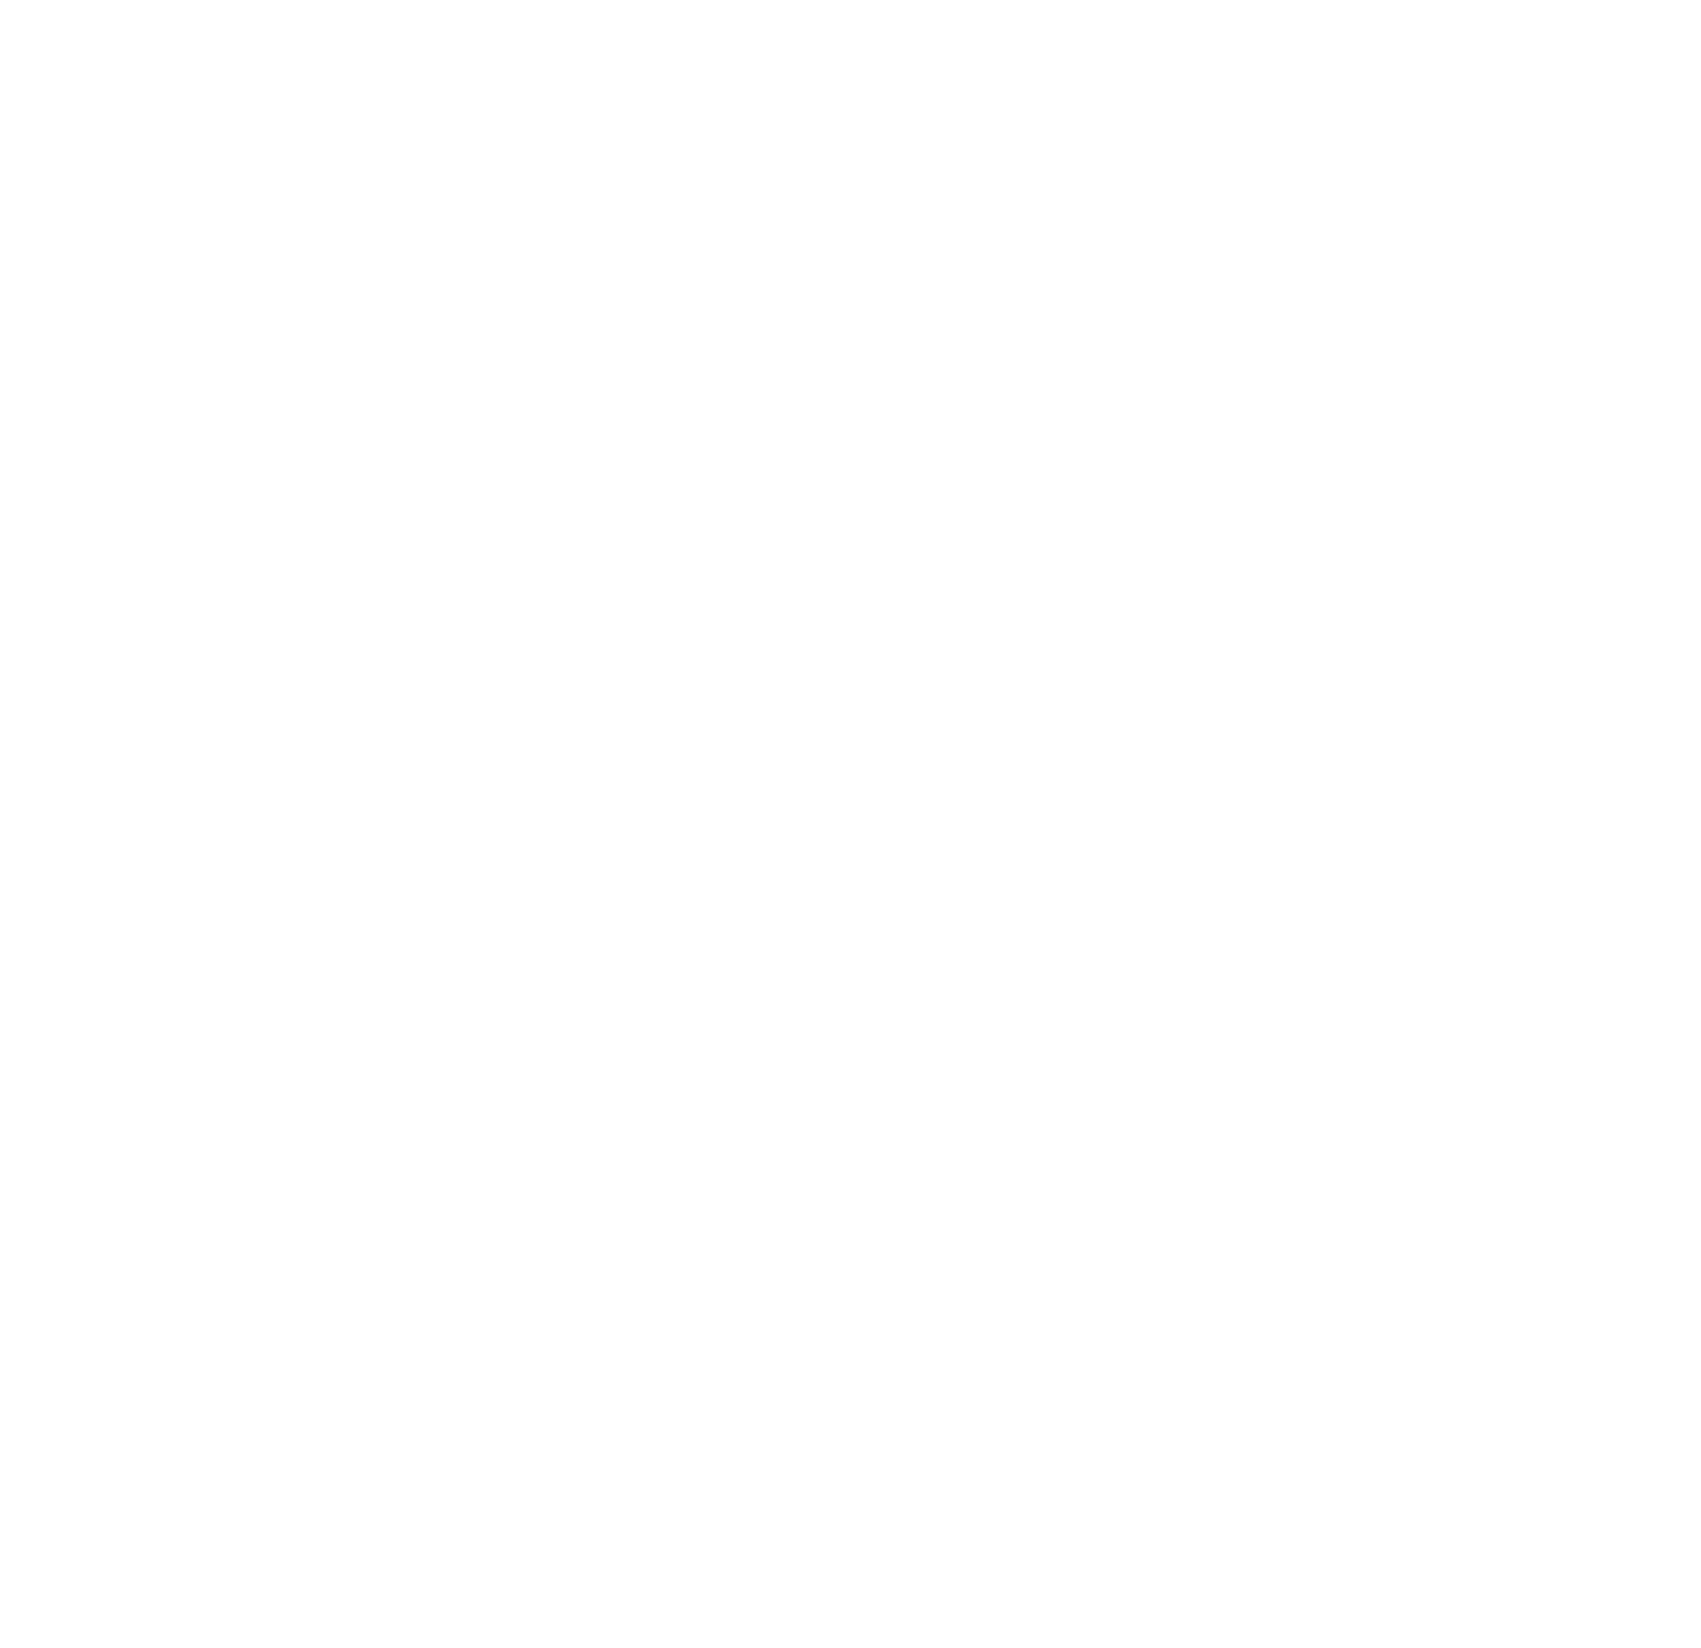 Bristol Pilates Studio